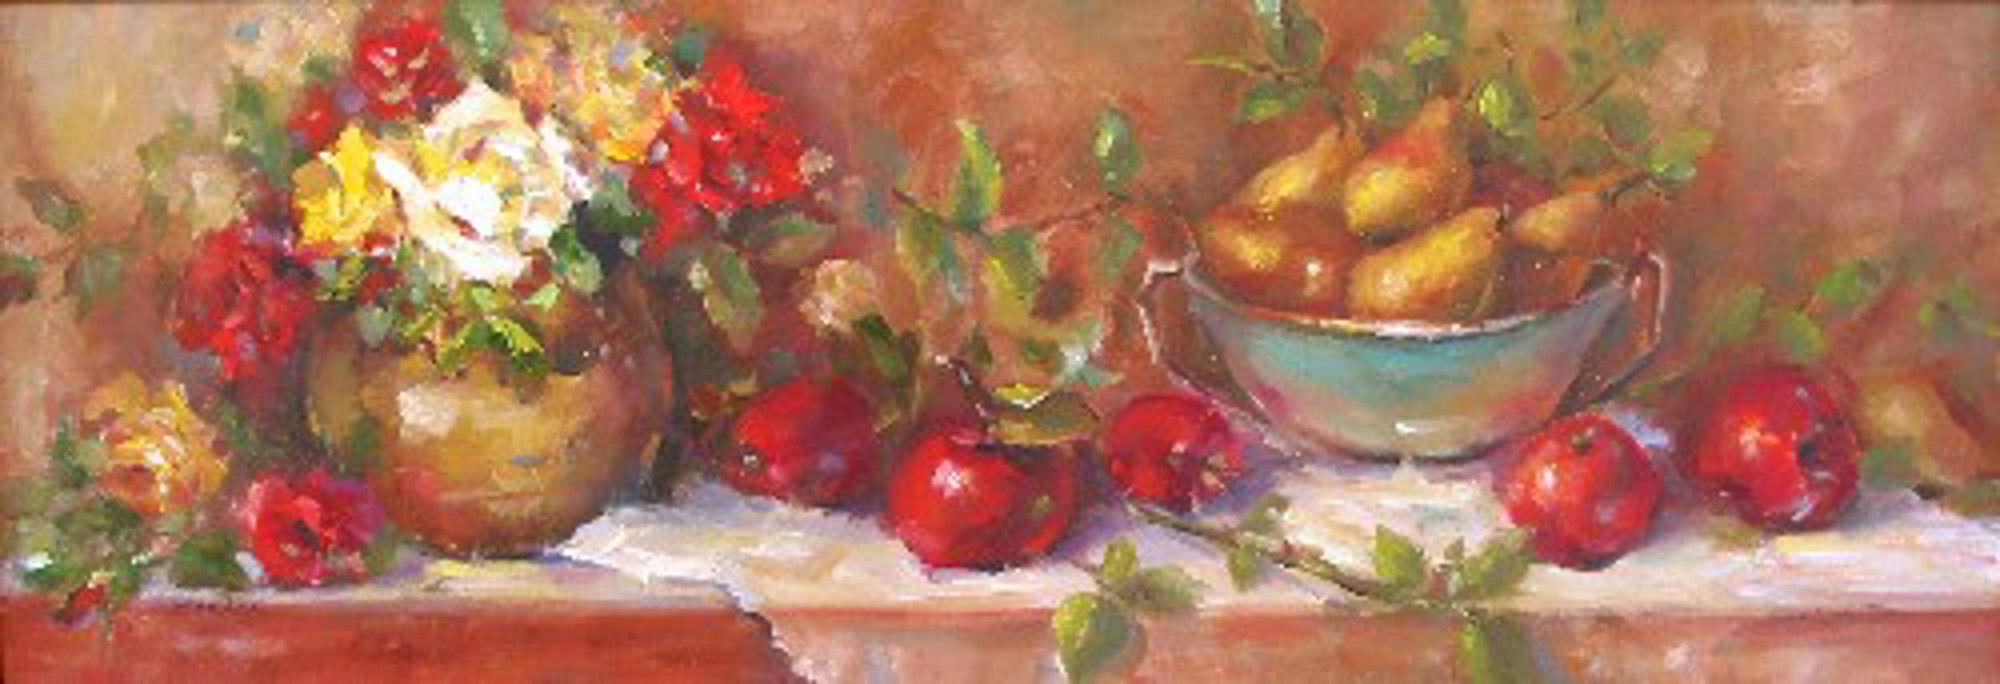 ROSES AND PEARS by JOY